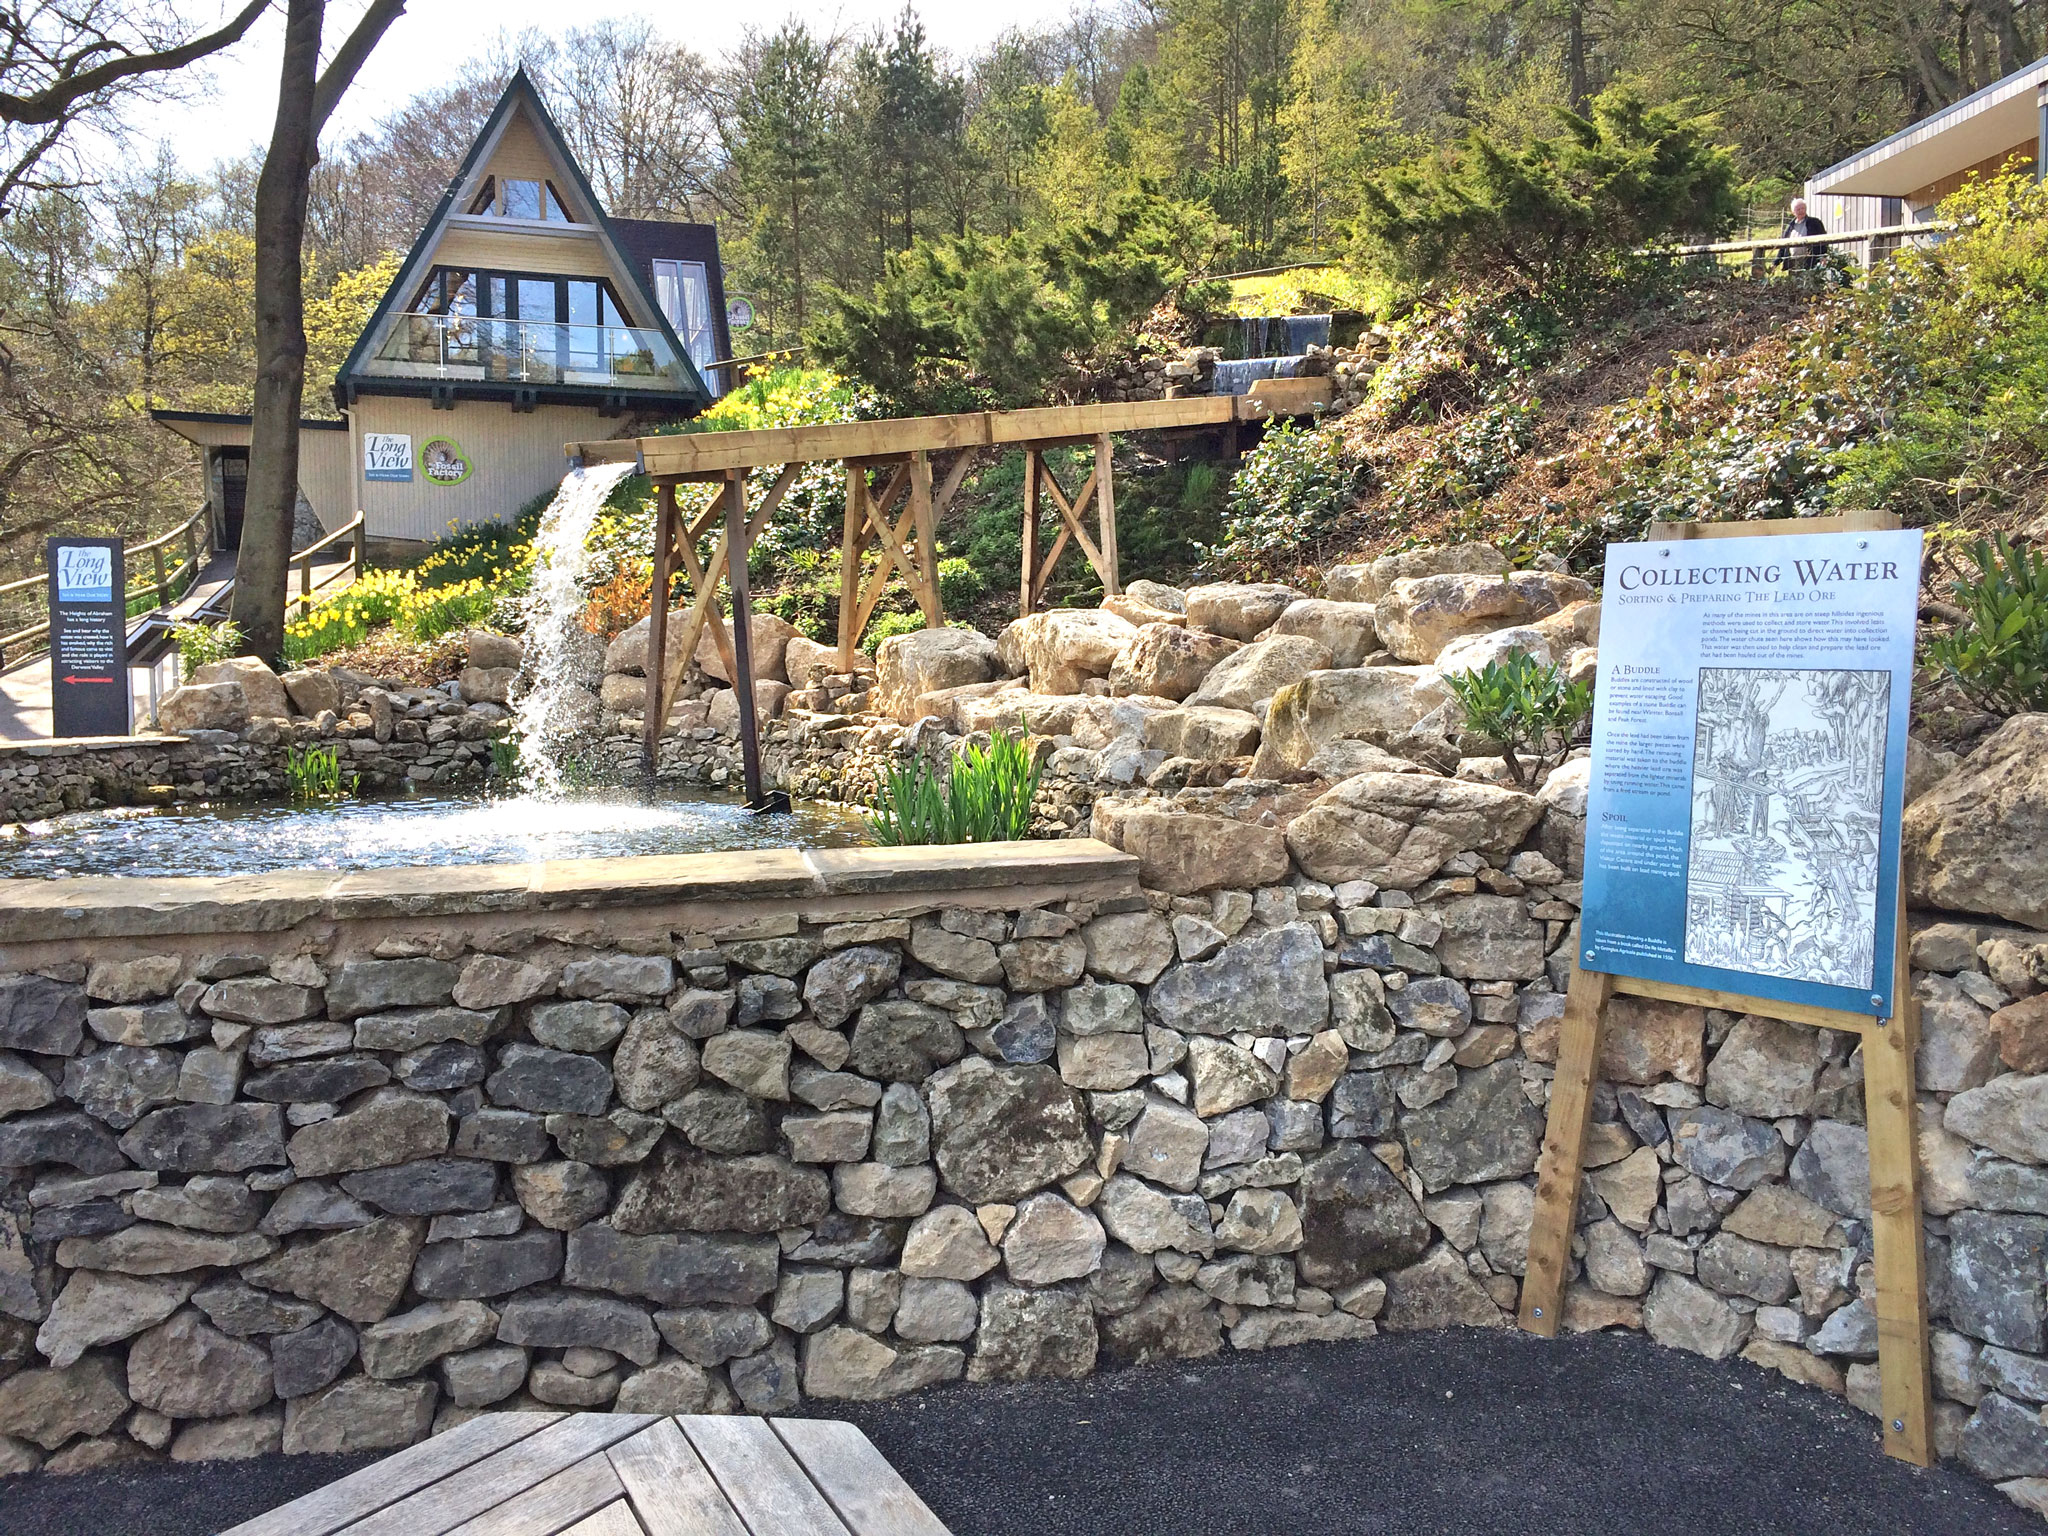 The new pond and lead mining water chute feature within The Heights of Abraham estate.